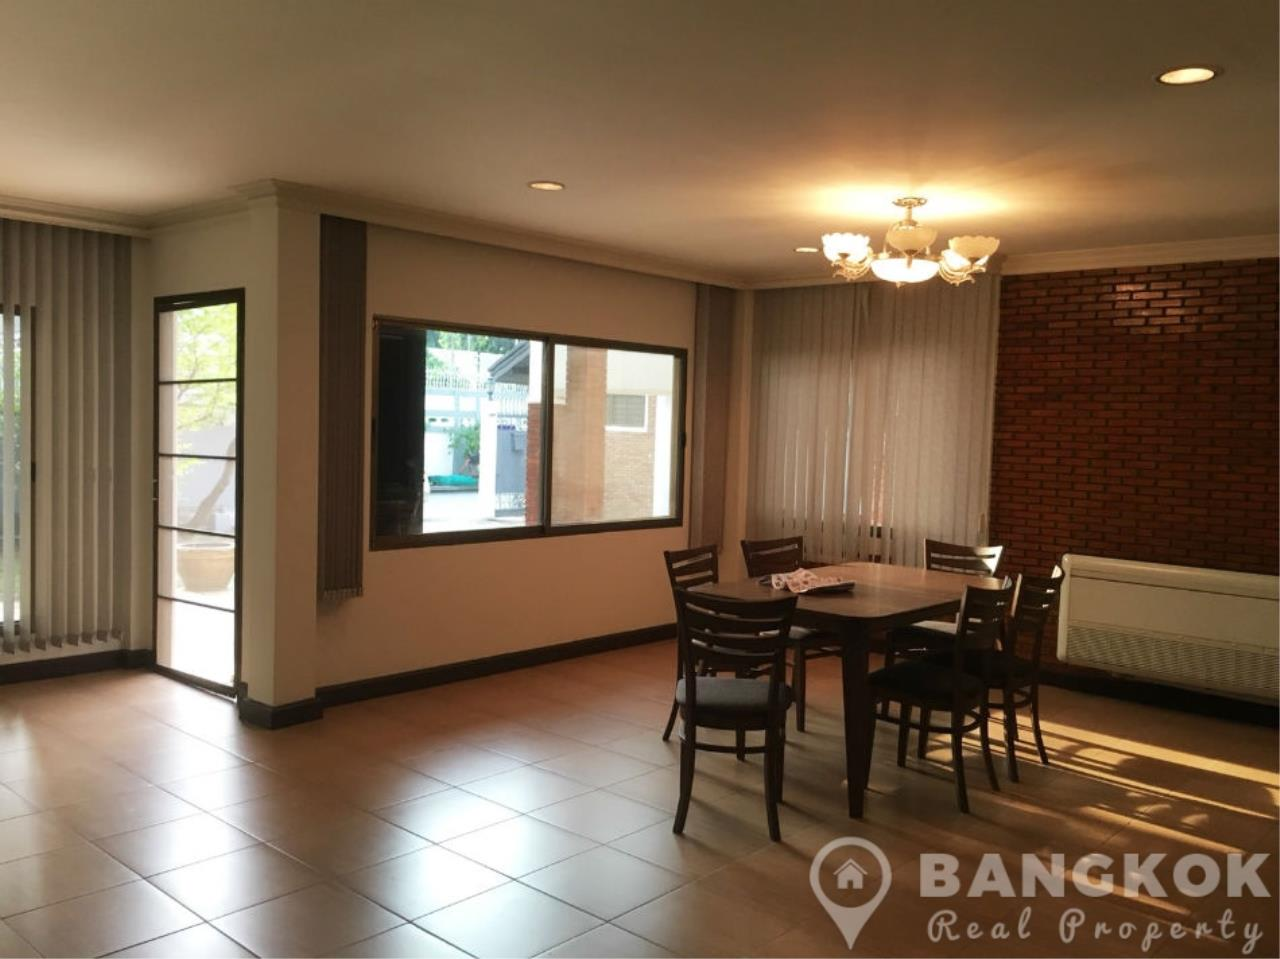 Bangkok Real Property Agency's Spacious 3 Bed 3 Bath Detached Thonglor House  2